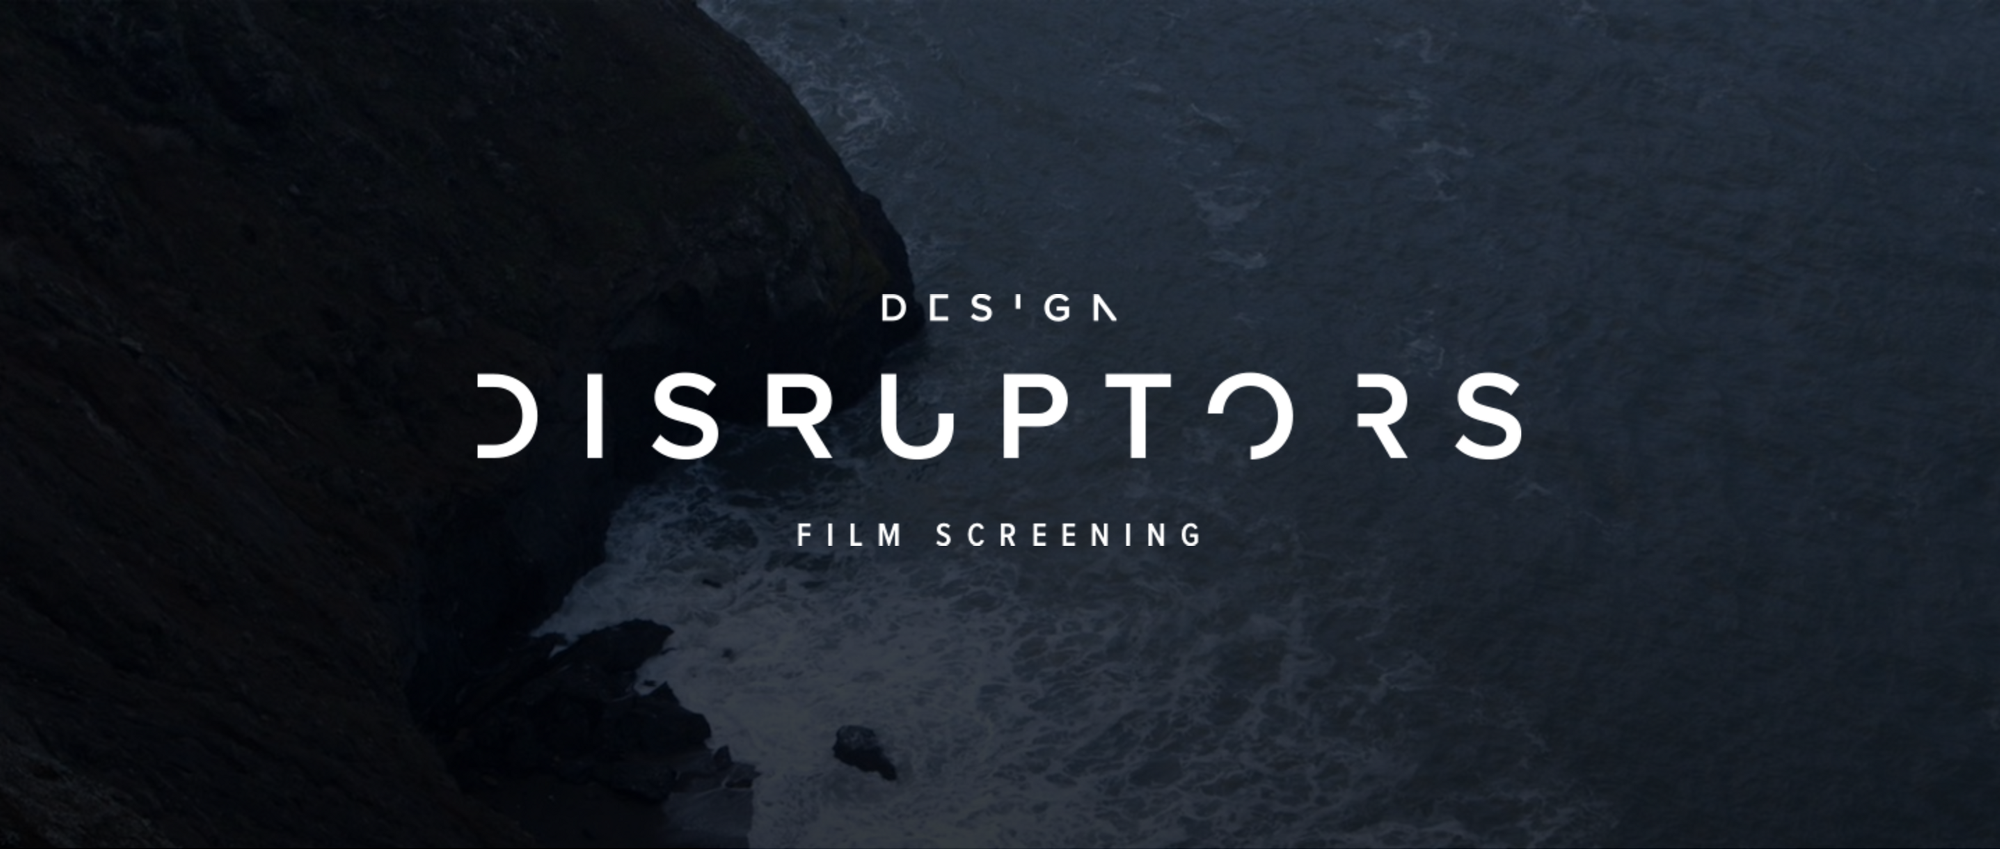 "Top Quotes Our Top 5 Quotes From Invision's ""Design Disruptors"" Documentary"